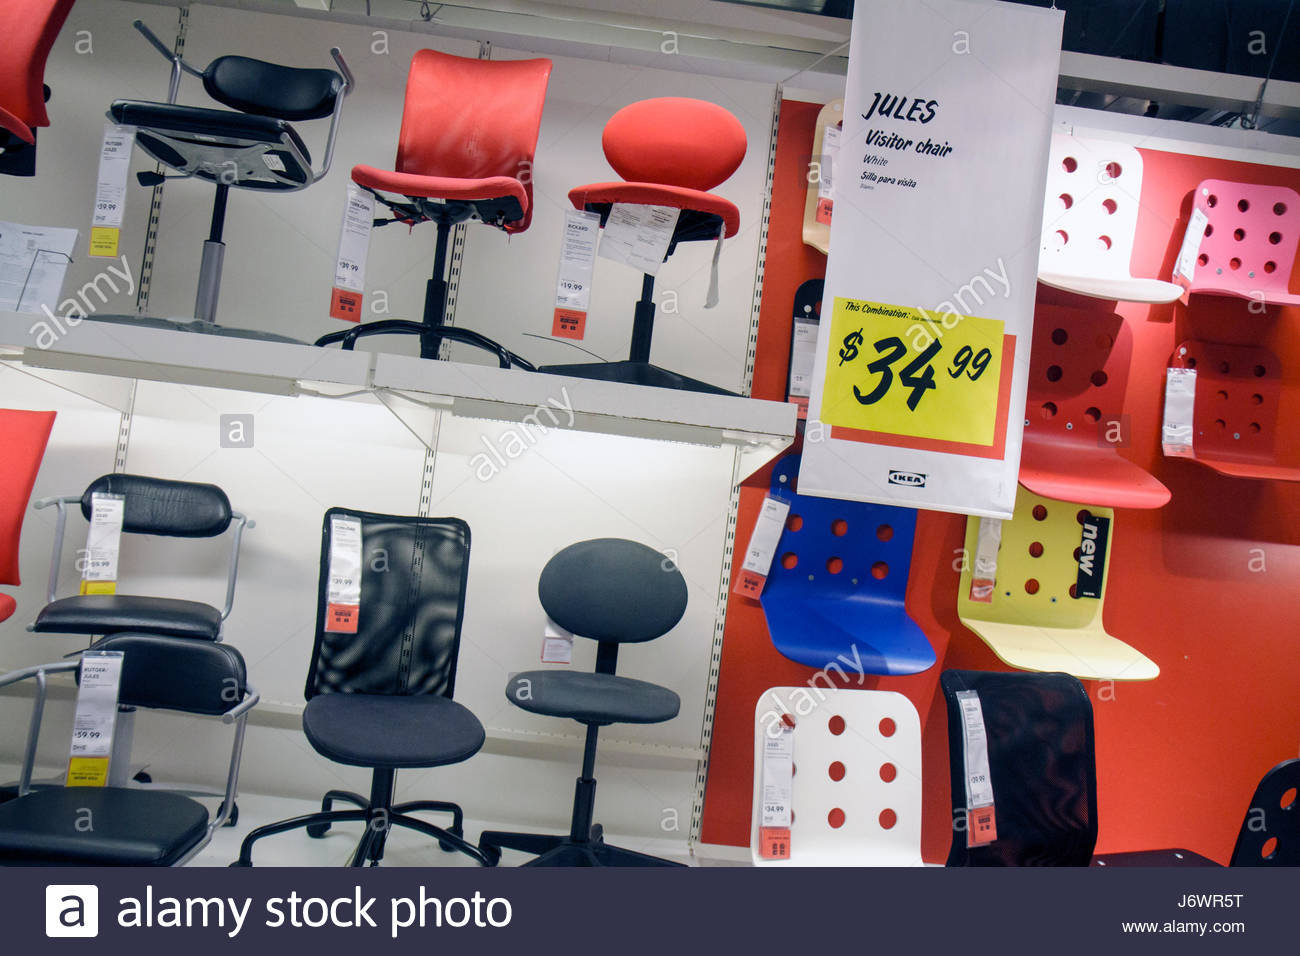 Fort Lauderdale Ft. Florida Sunrise IKEA Home Furnishings Shopping Retail  Display For Sale Furniture Office Chairs